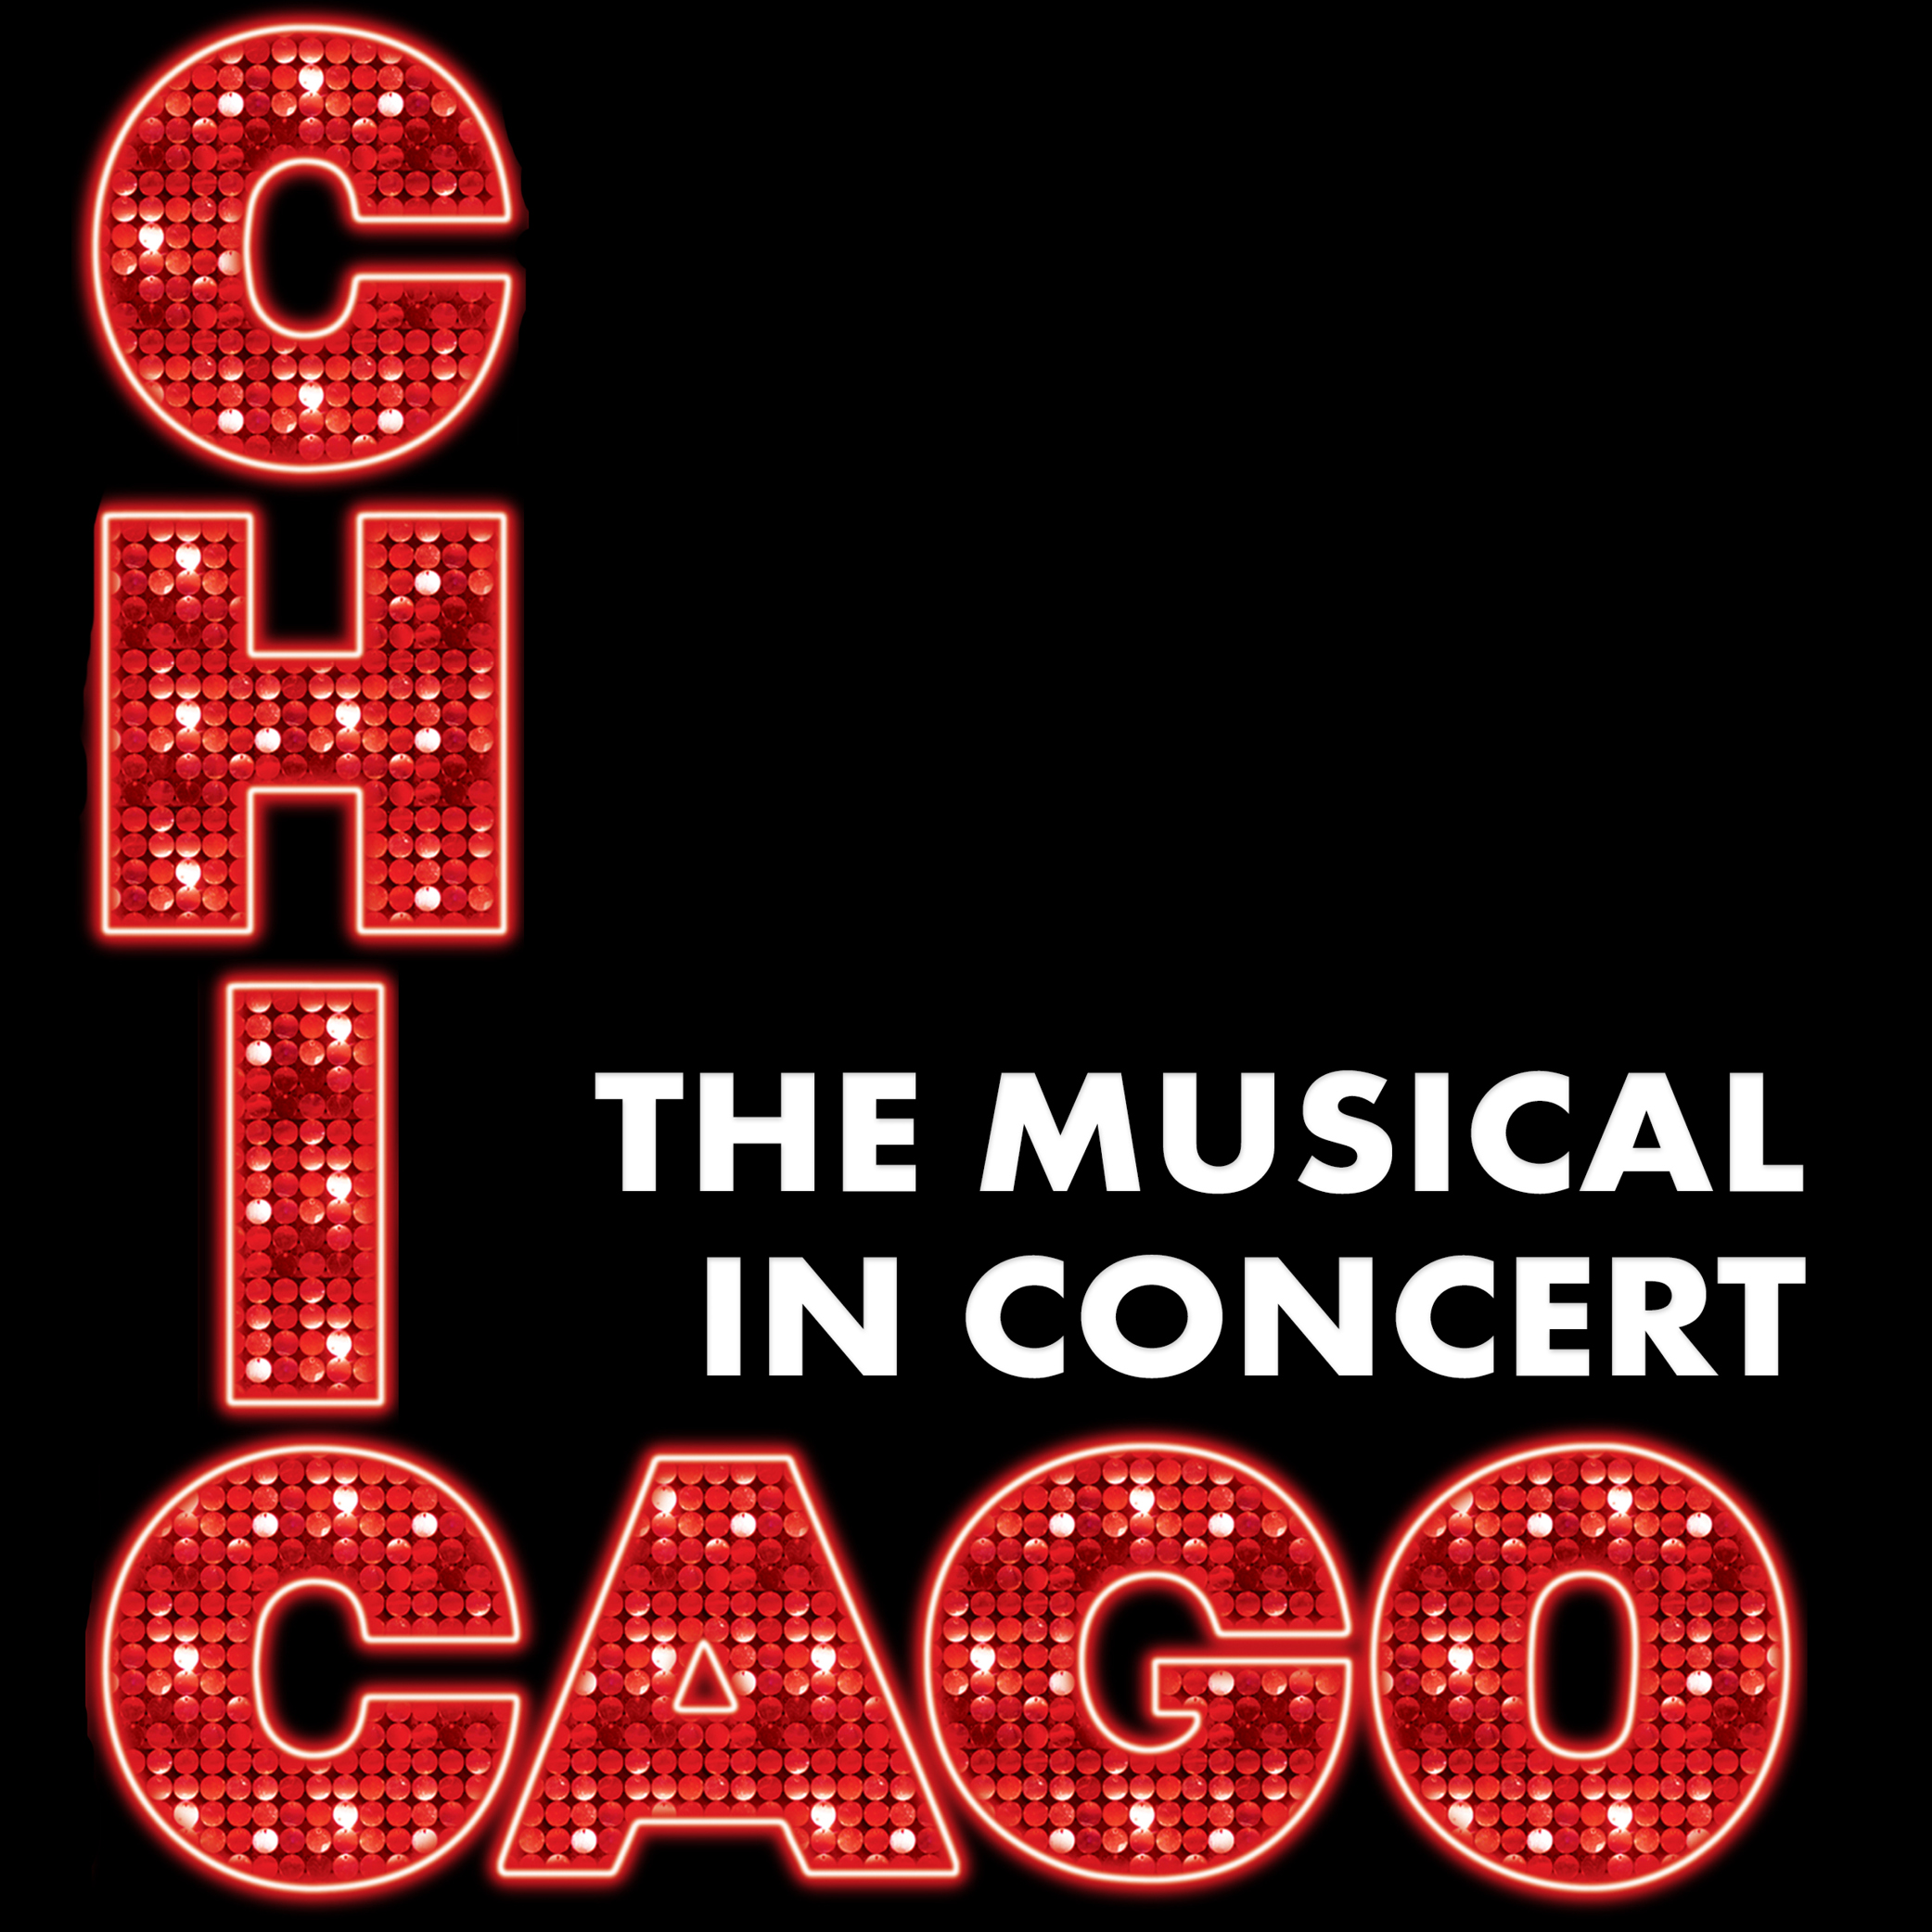 Chicago - The Musical in Concert text